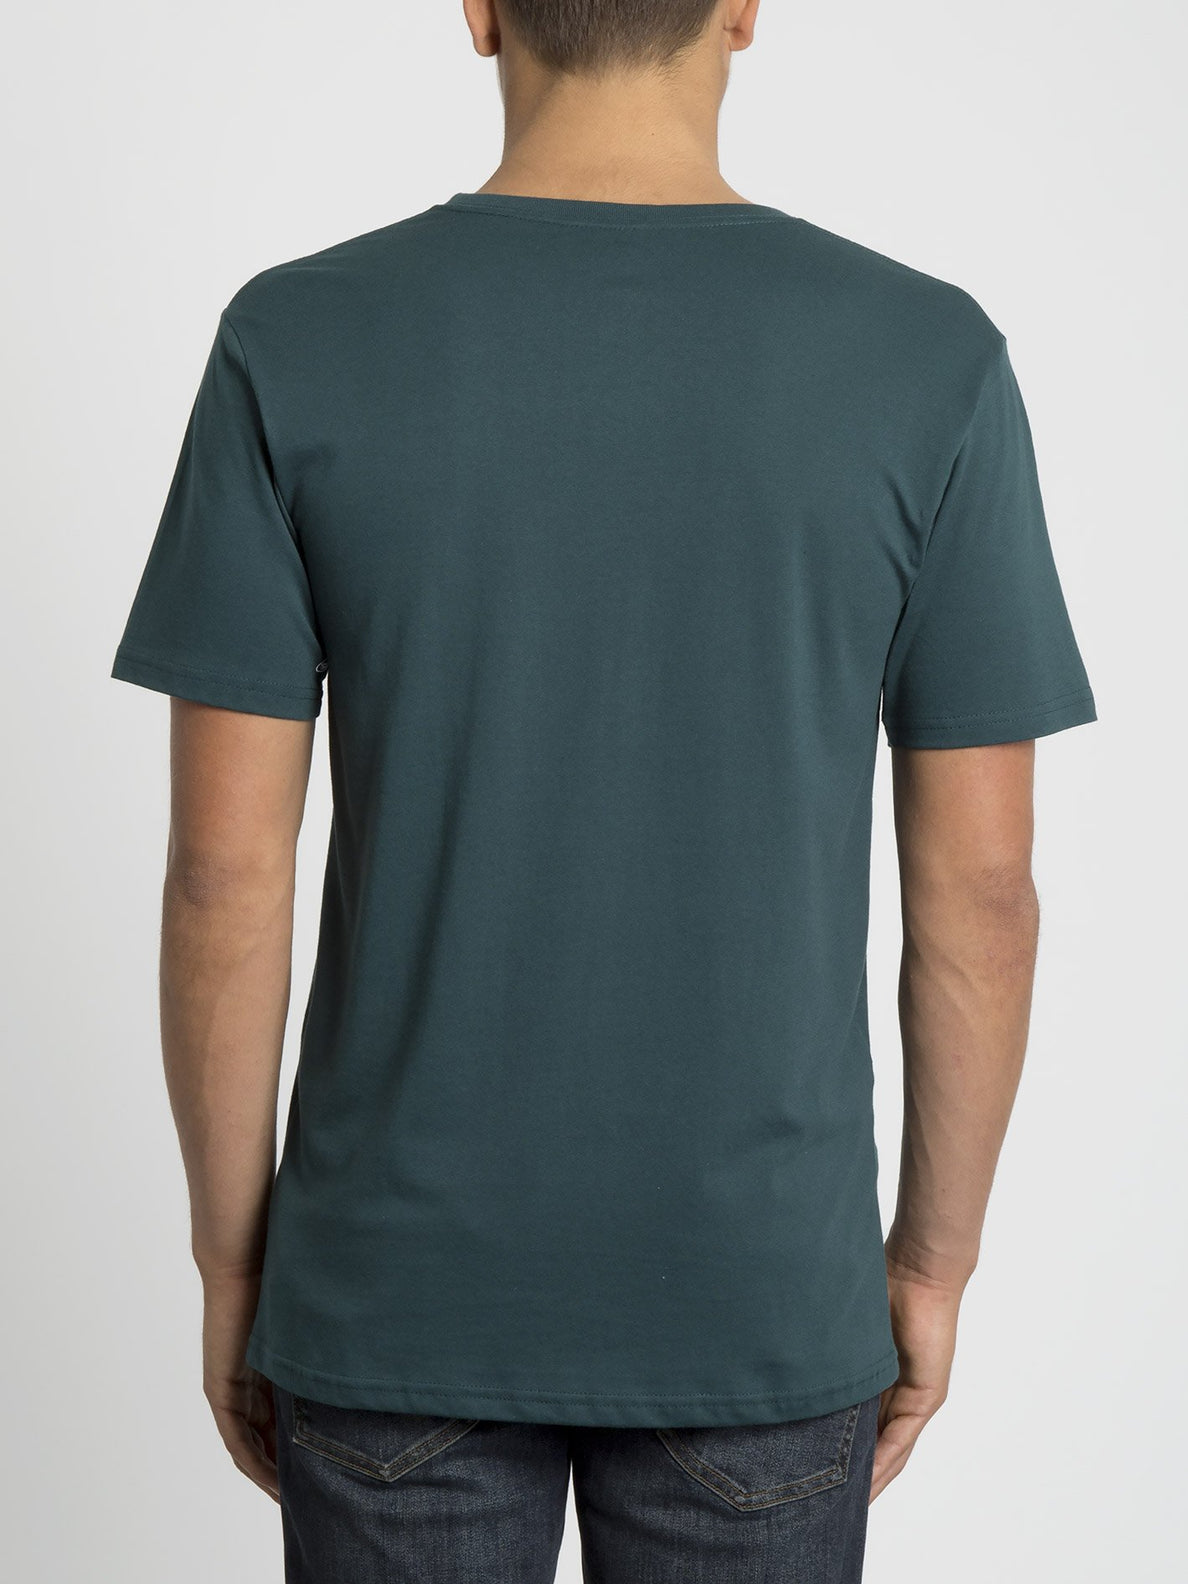 Optional T-shirt - Evergreen (A3531959_EVR) [B]